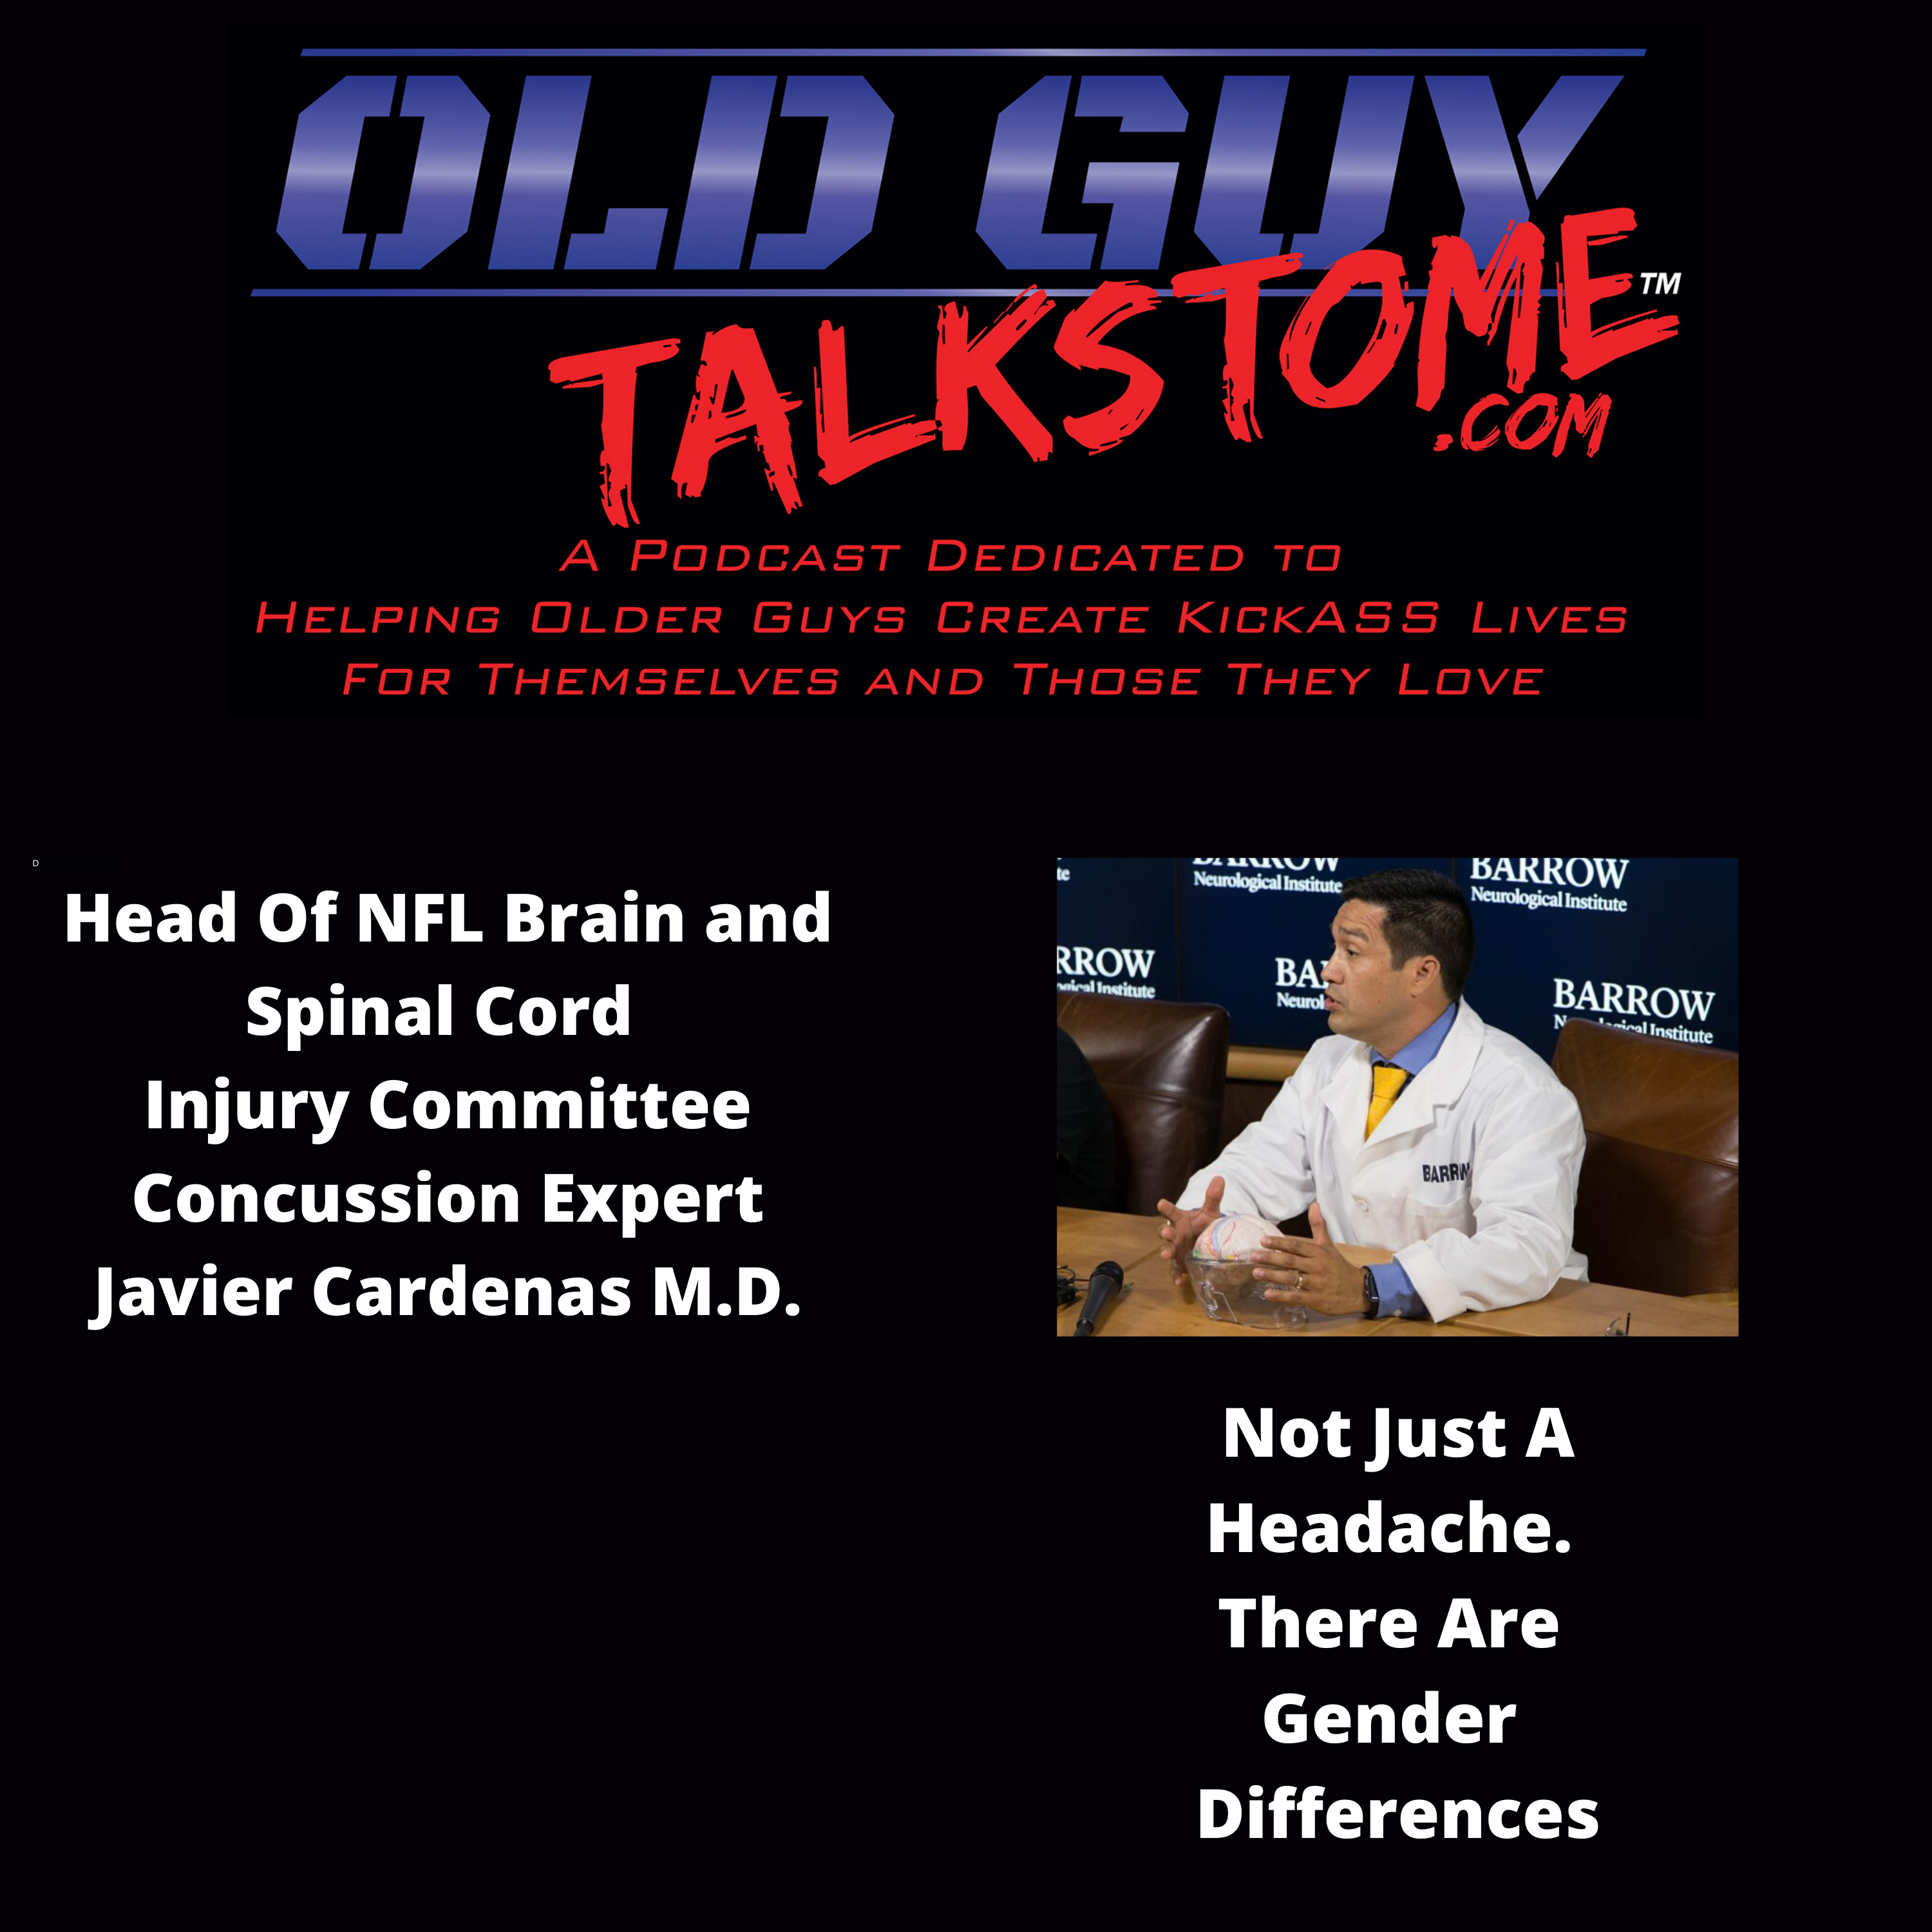 OldGuyTalksToMe - Head Of NFL Brain and Spinal Cord  Injury Committee World Famous  Concussion Expert Javier Cardenas M.D.